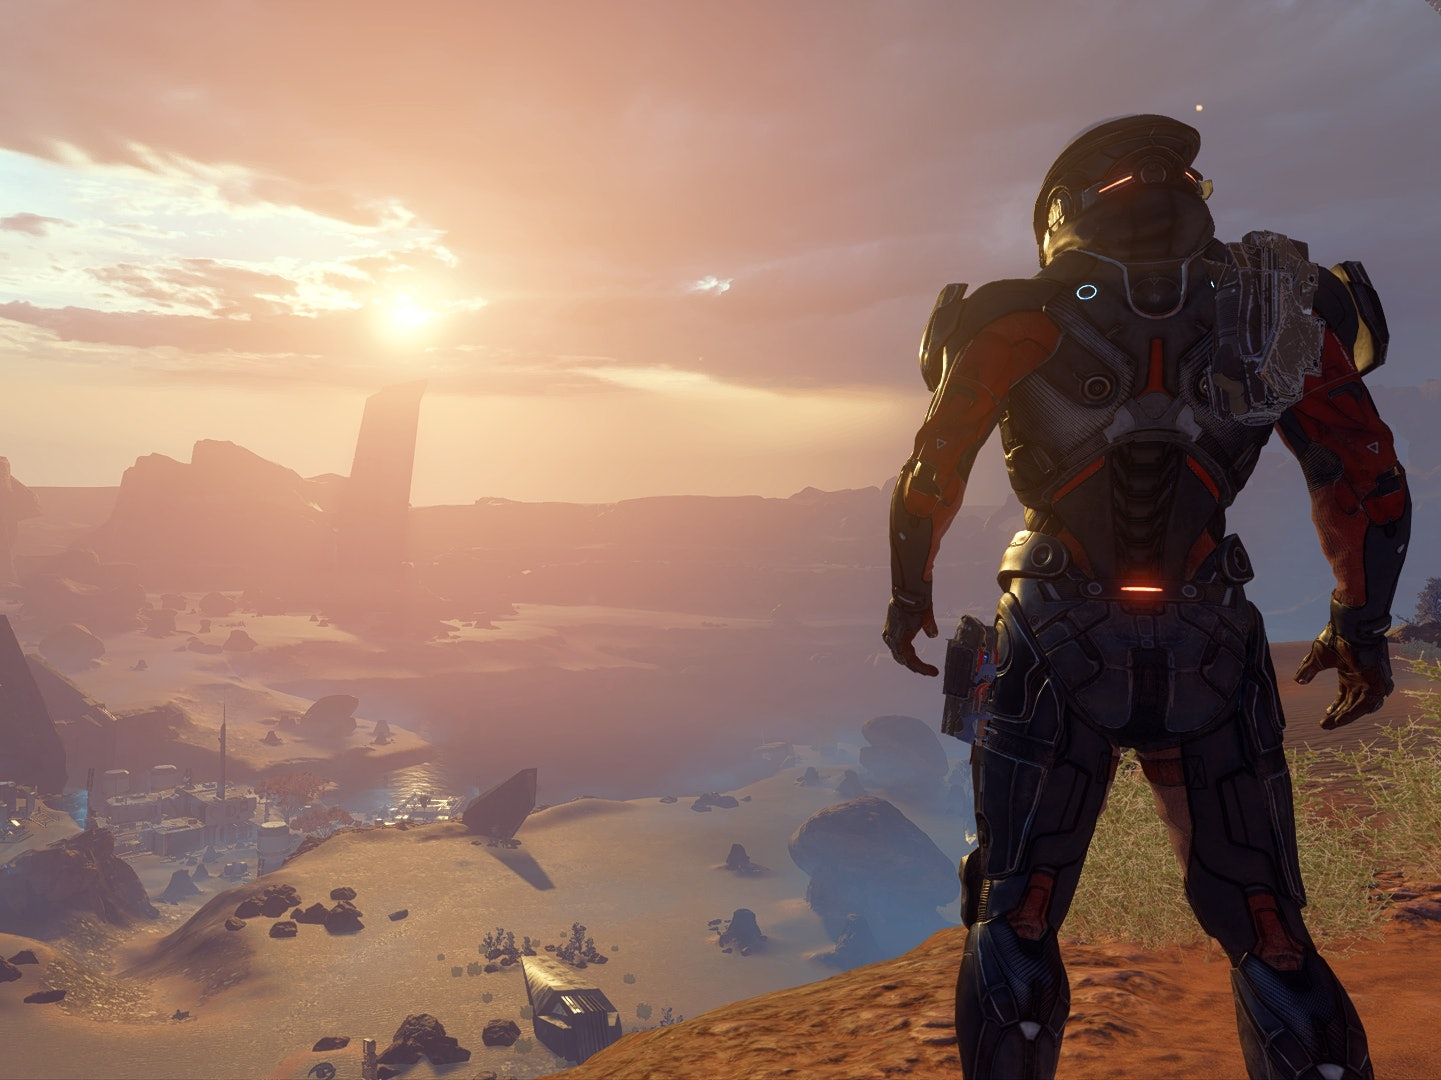 The Best Part of 'Mass Effect: Andromeda' Is Exploration